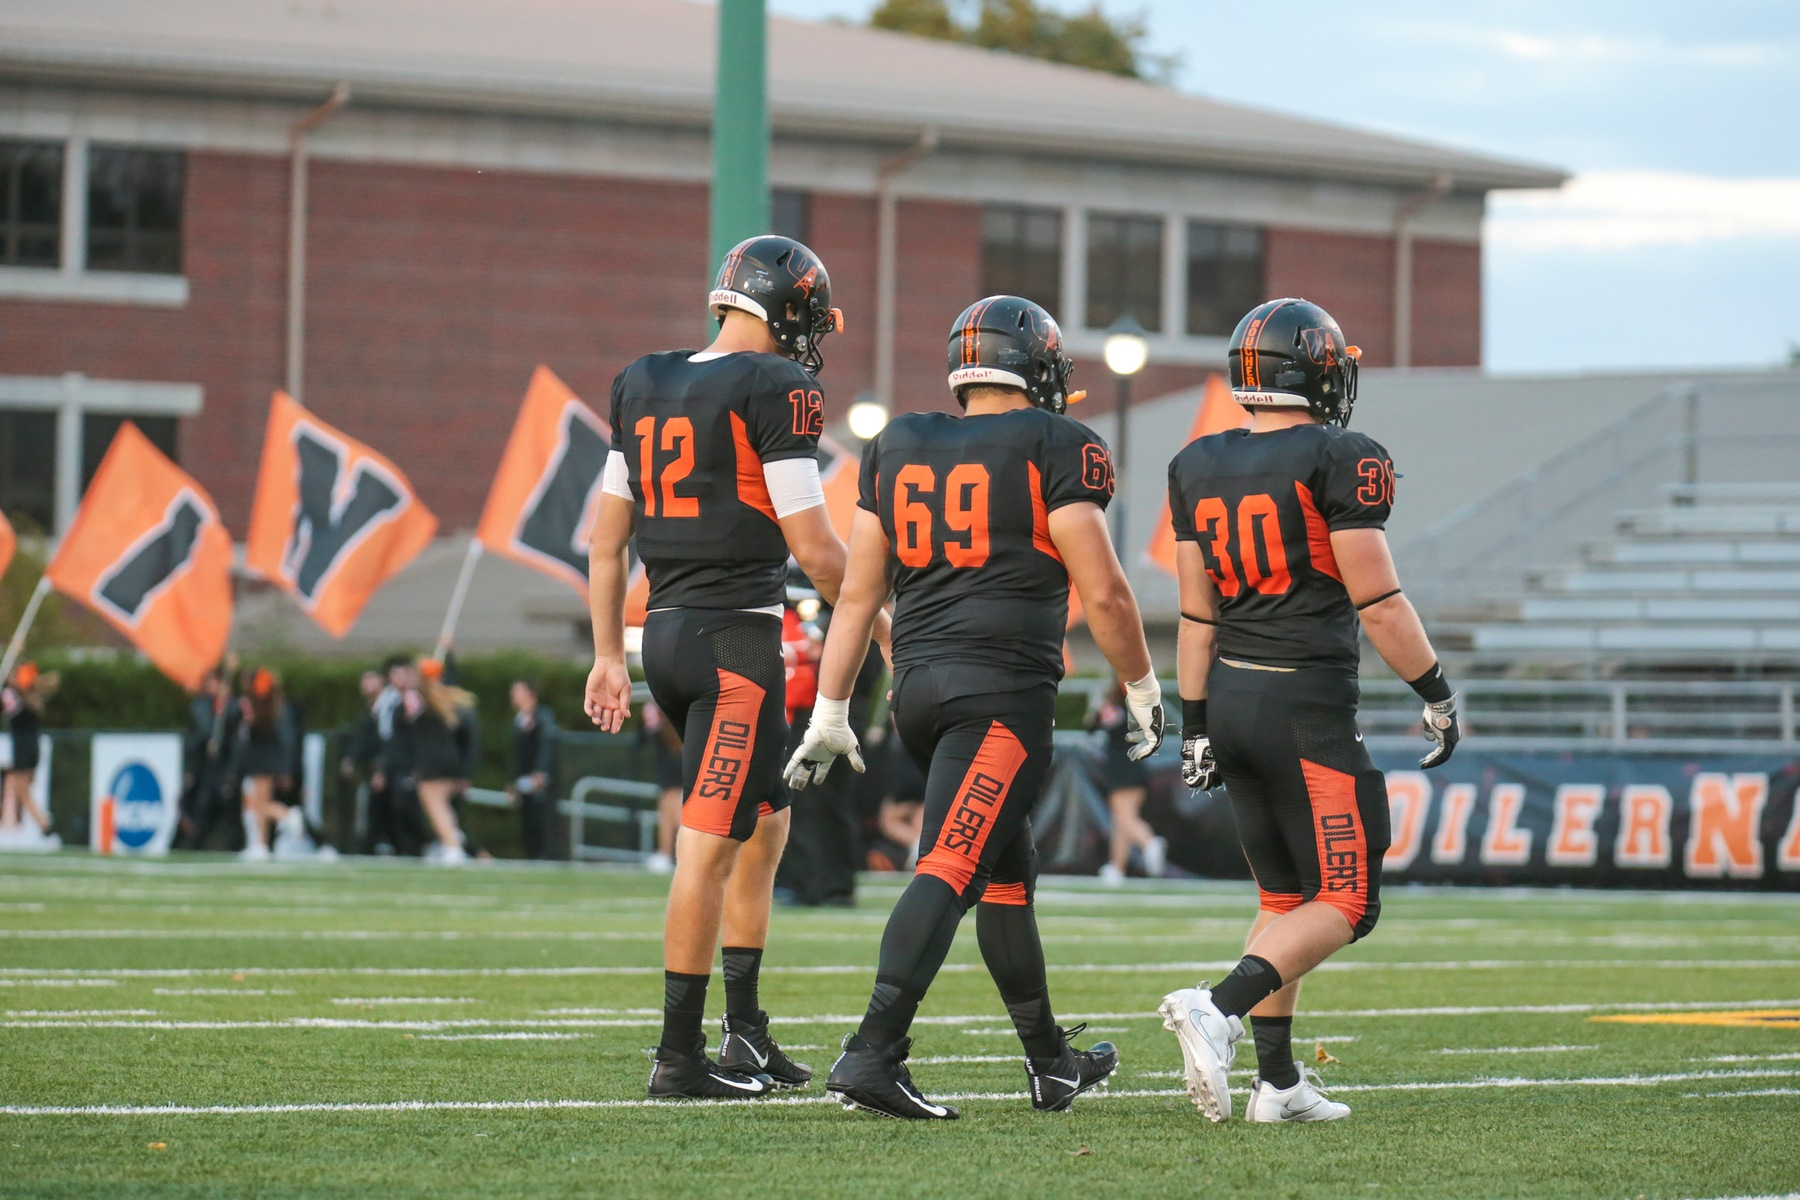 Findlay Moves Up in D2Football.com Poll